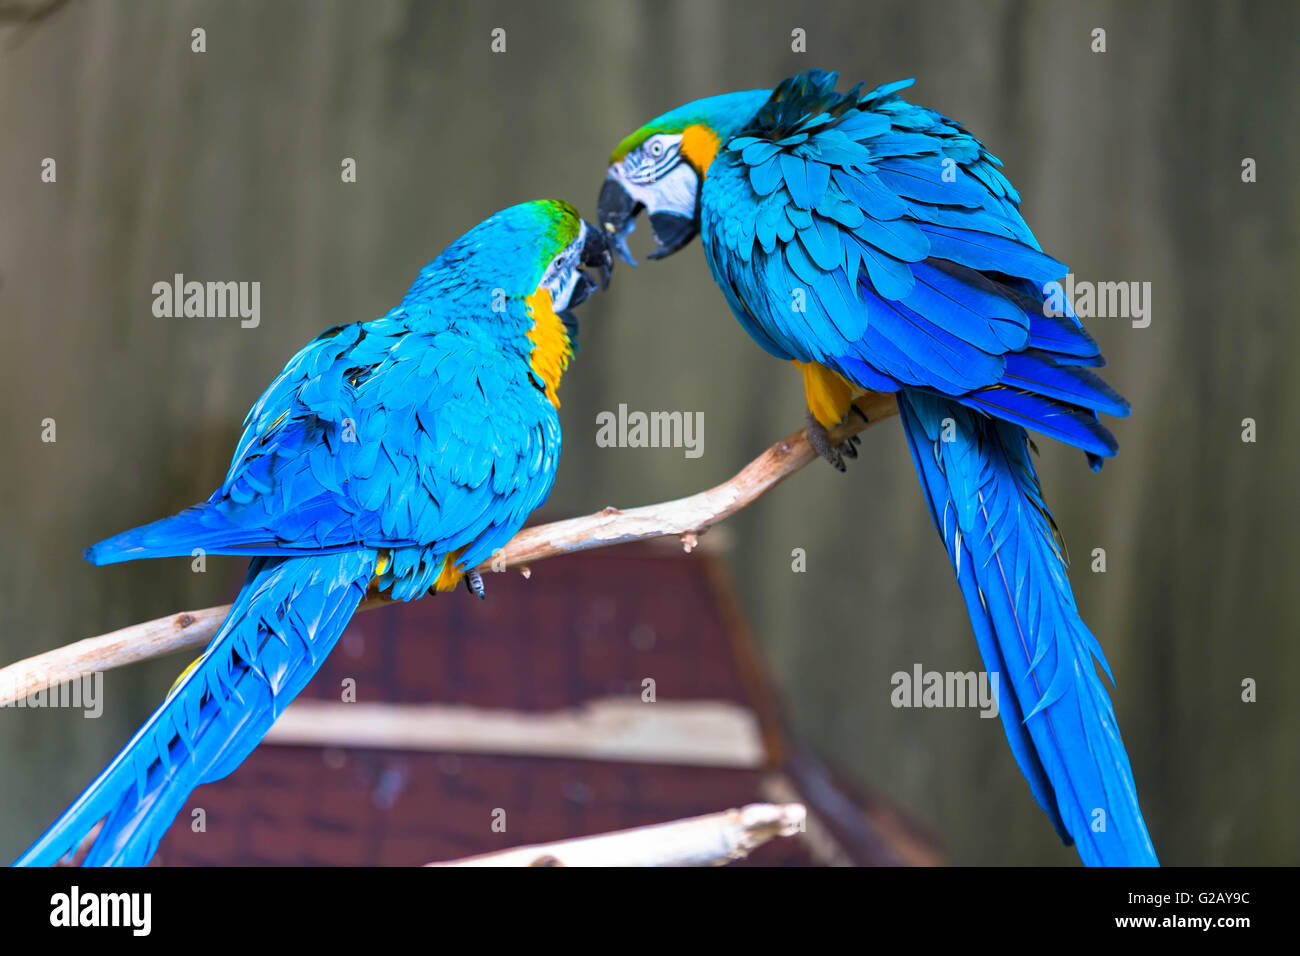 A couple of loving macaws - Stock Image